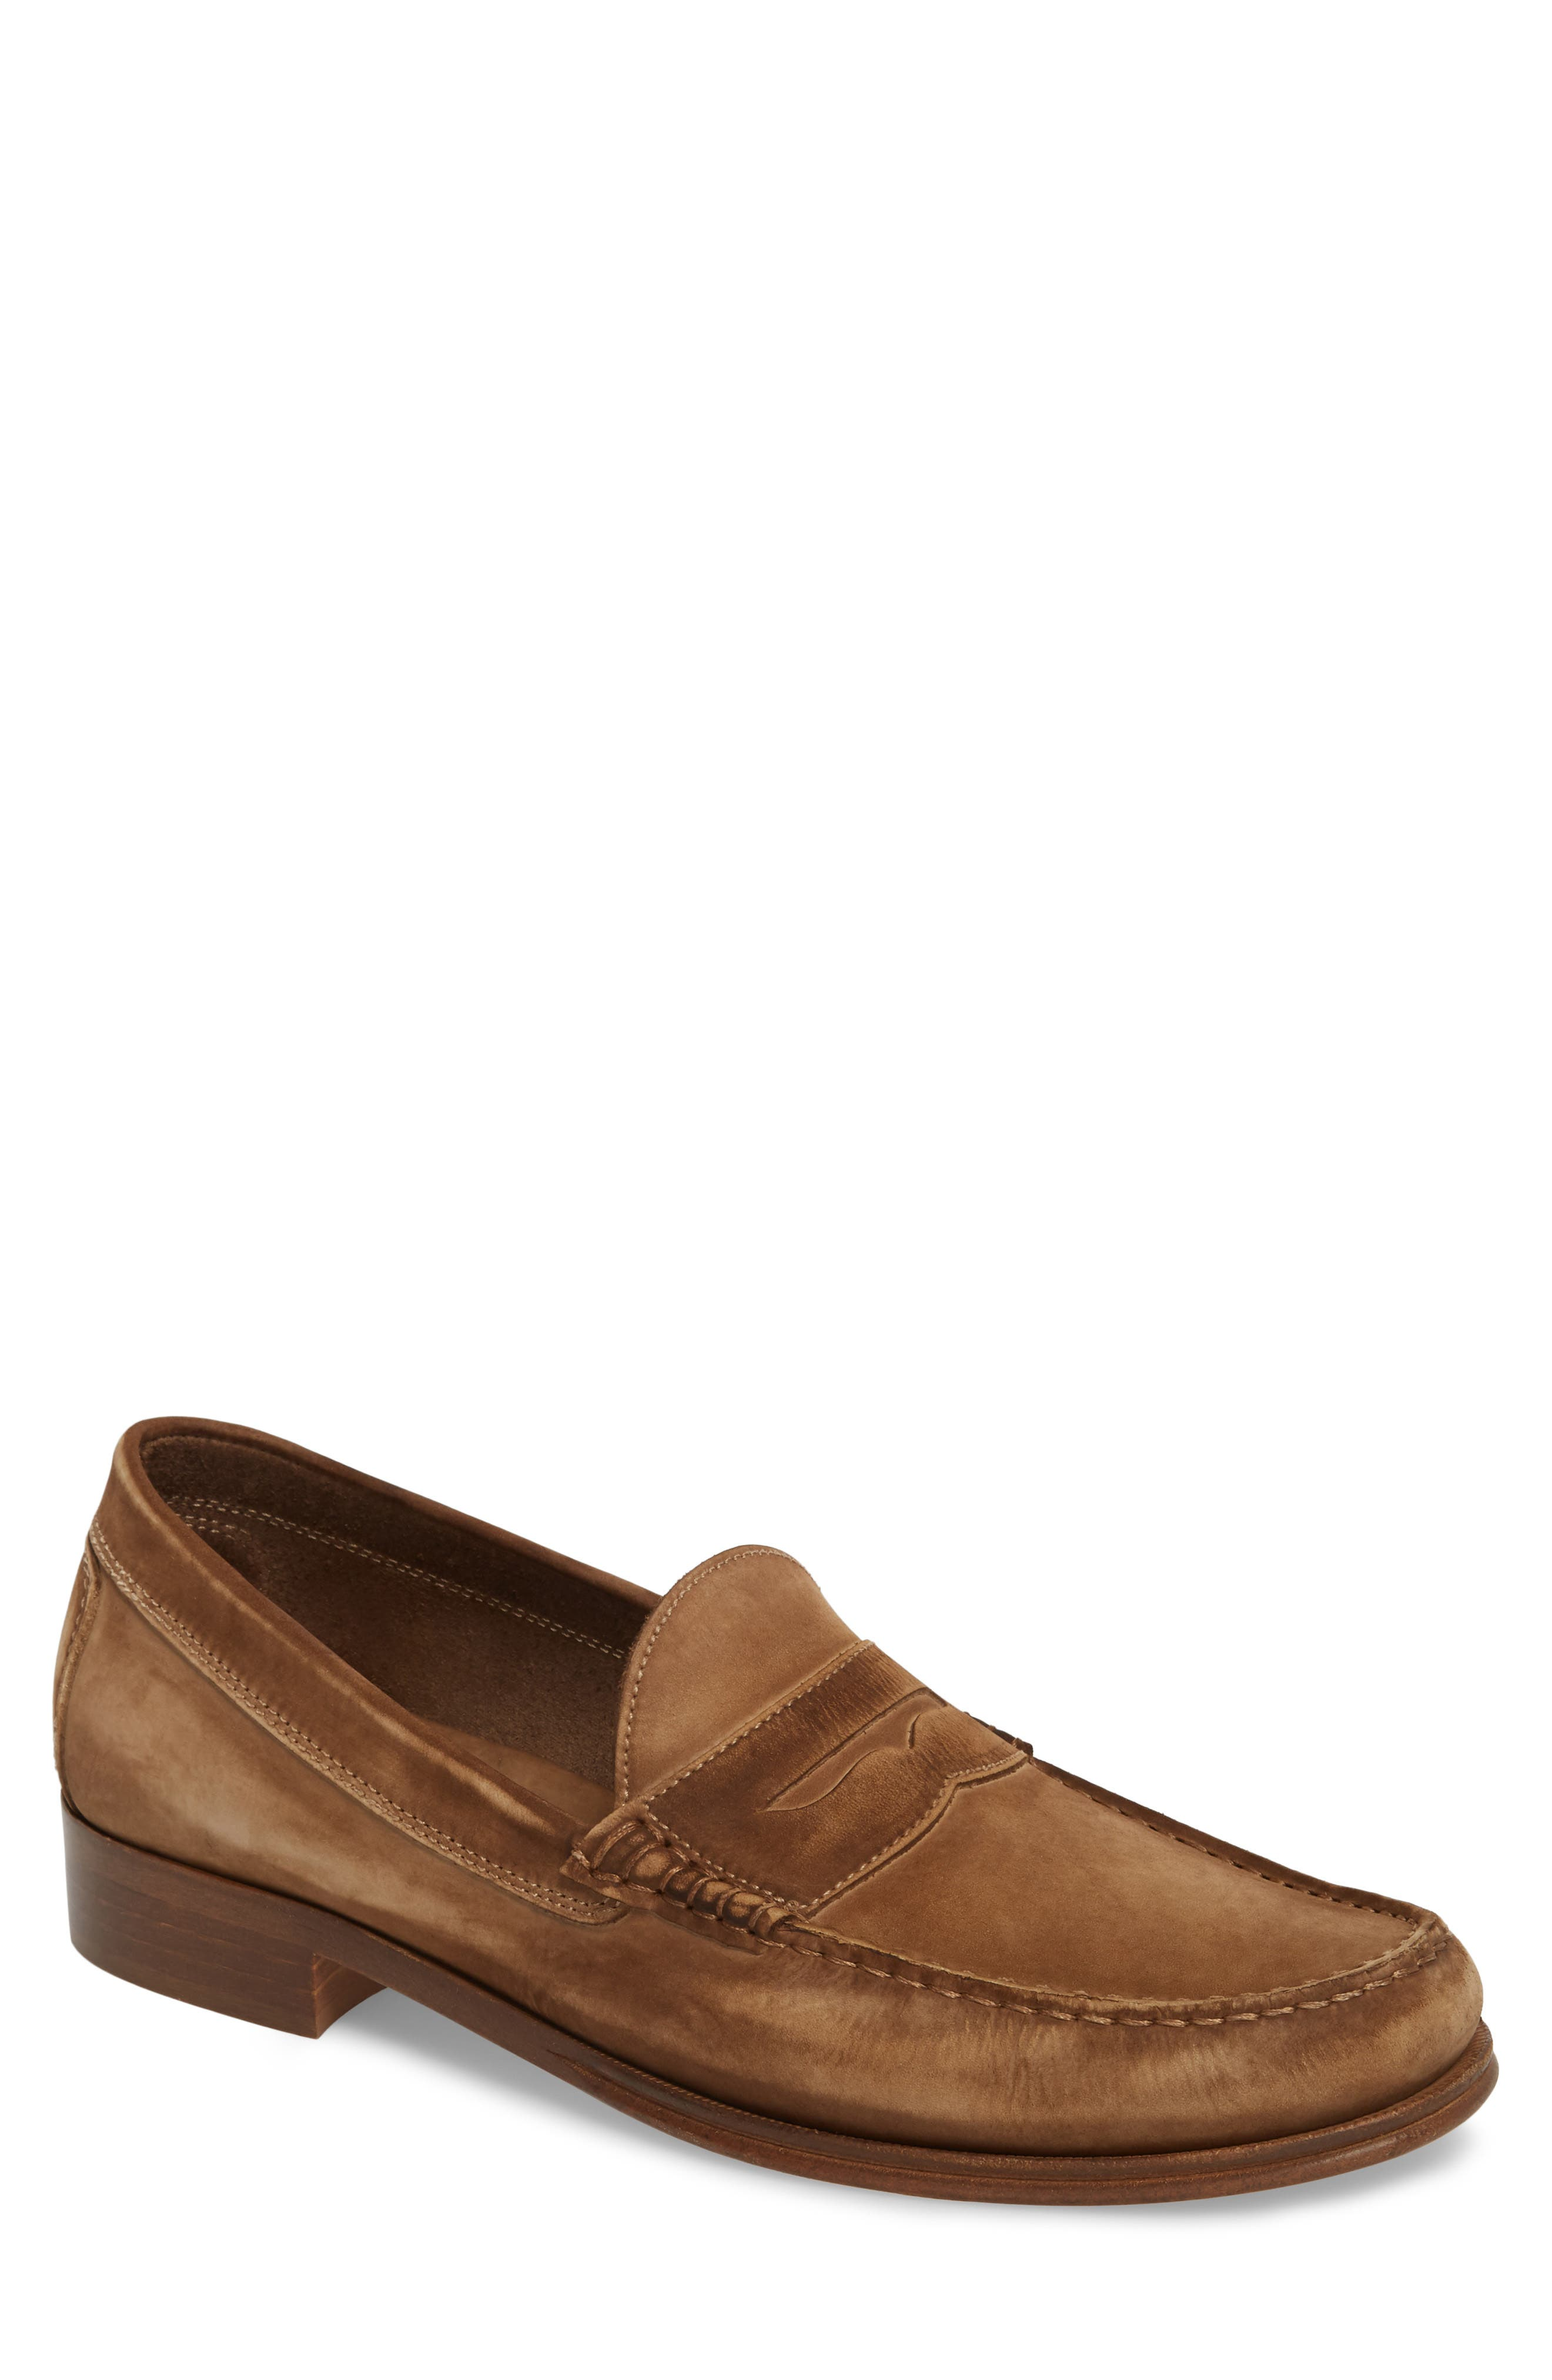 Nicola Penny Loafer,                         Main,                         color, 205